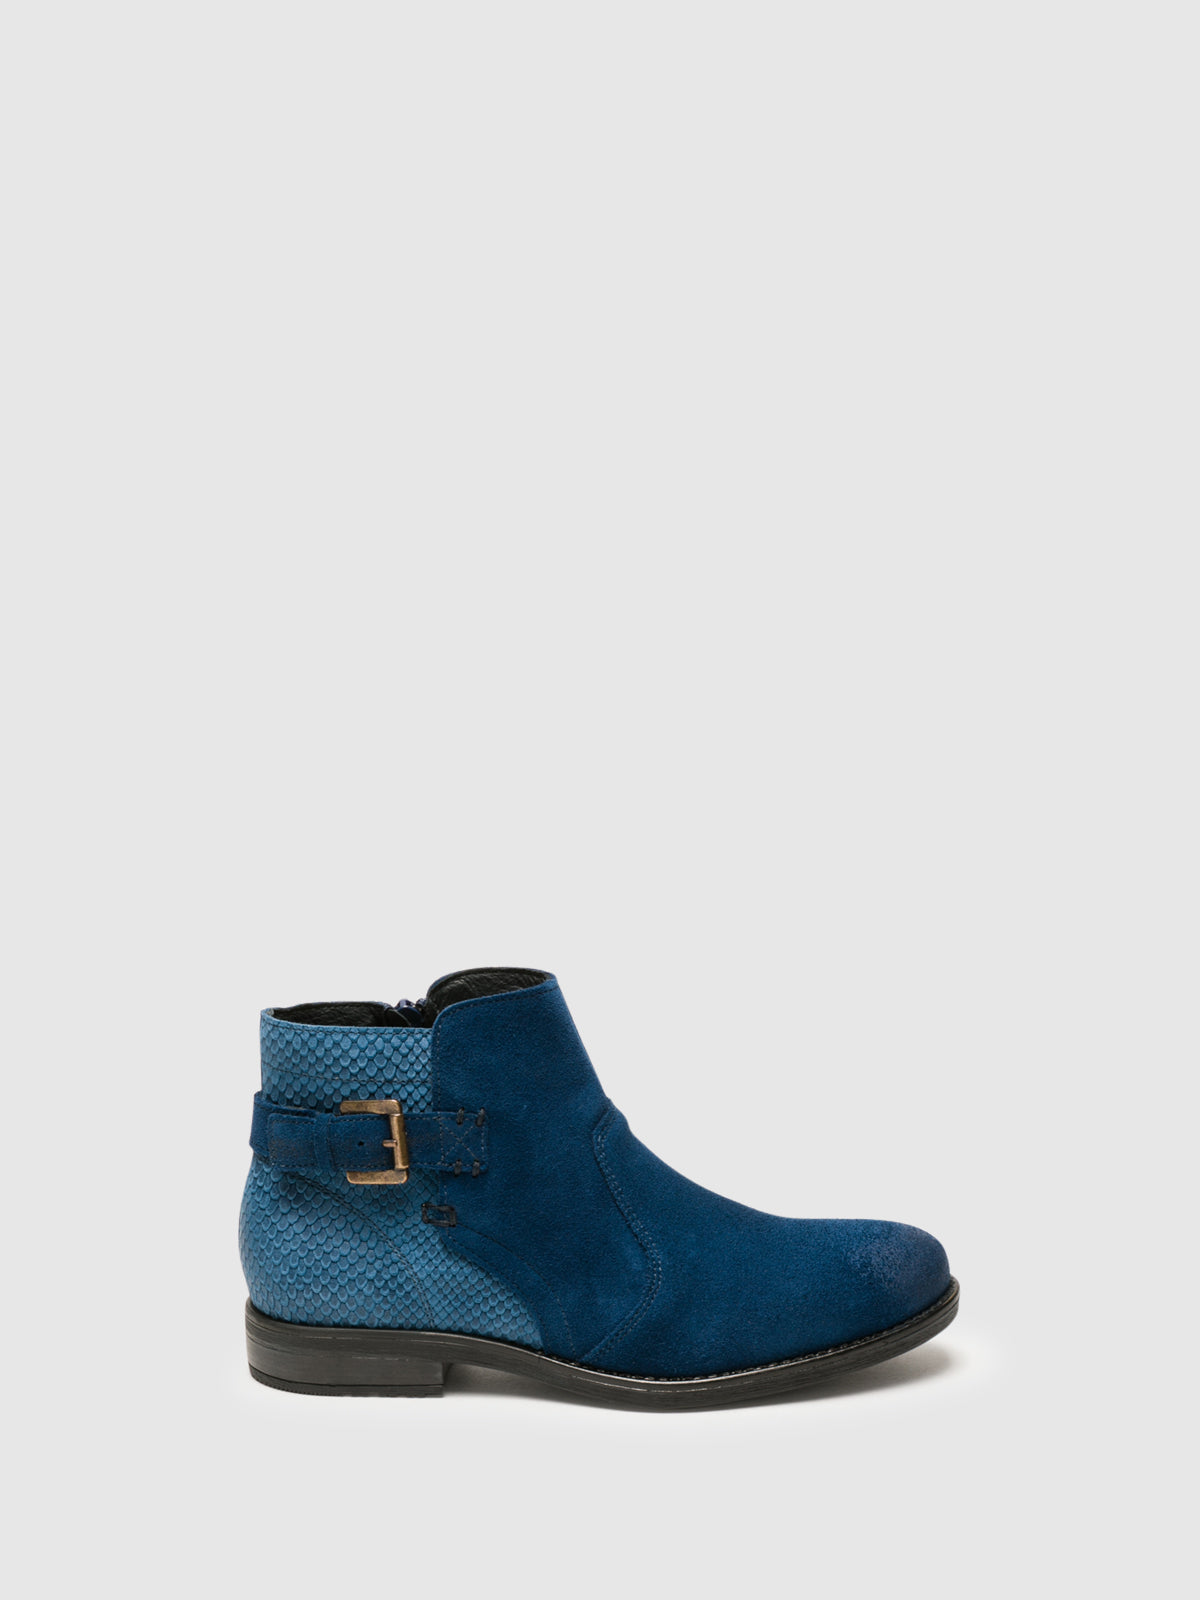 Bos&Co Blue Zip Up Ankle Boots